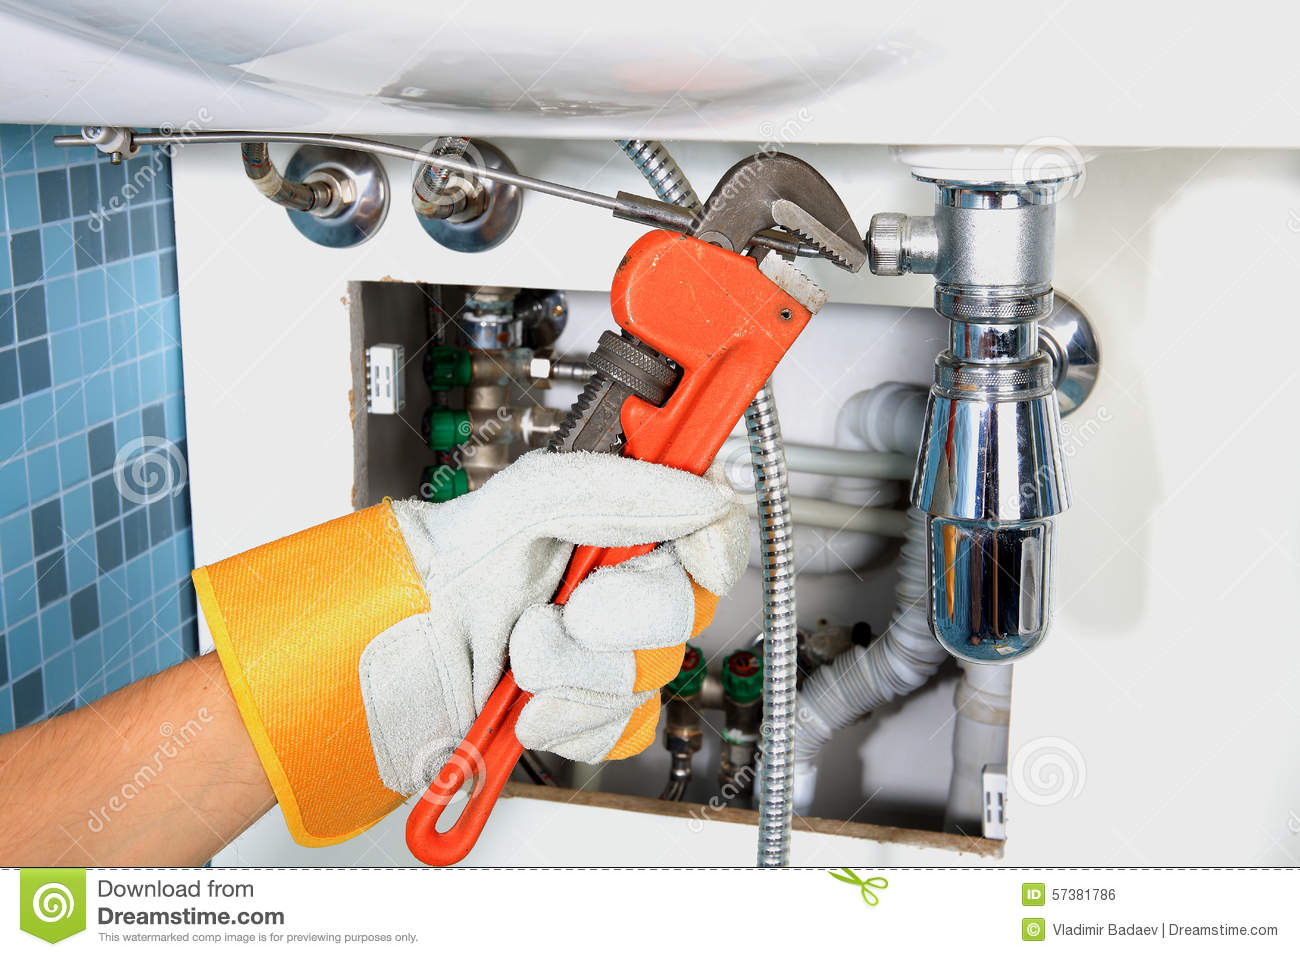 Plumbing Work And Sanitary Engineering Stock Photo  Image